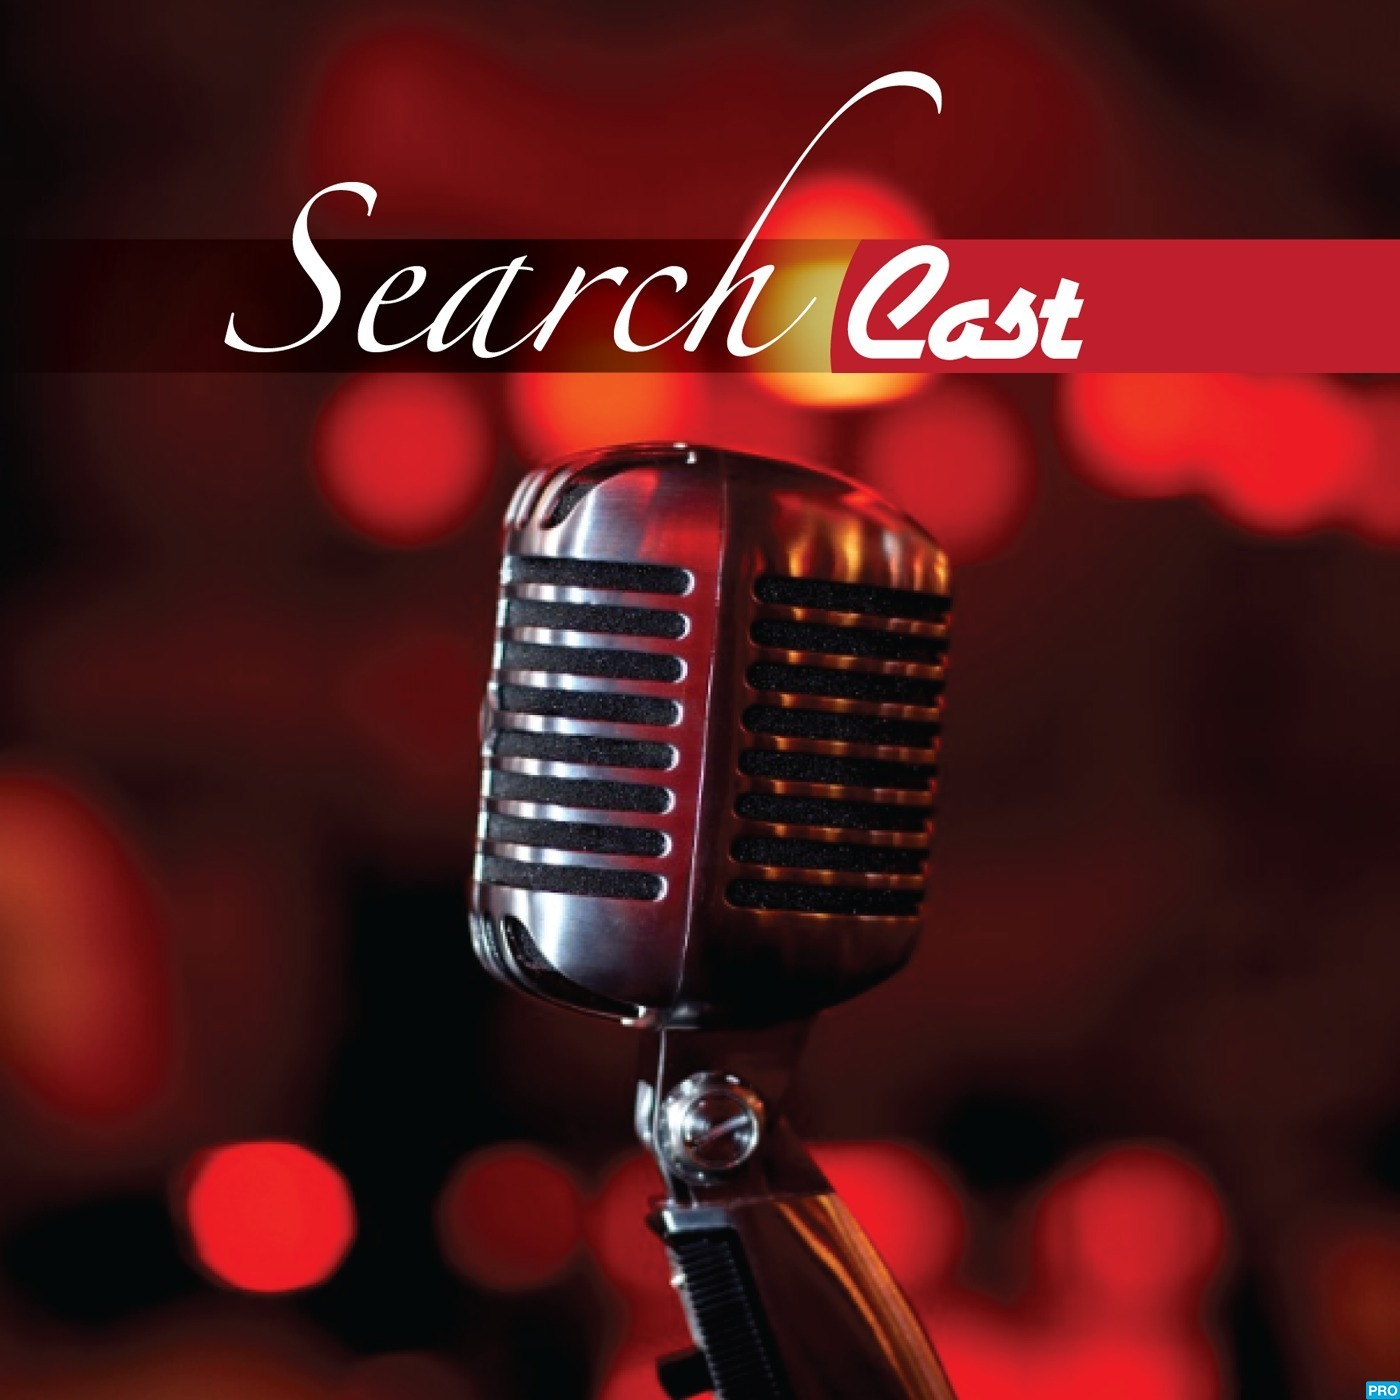 Searchcast RC